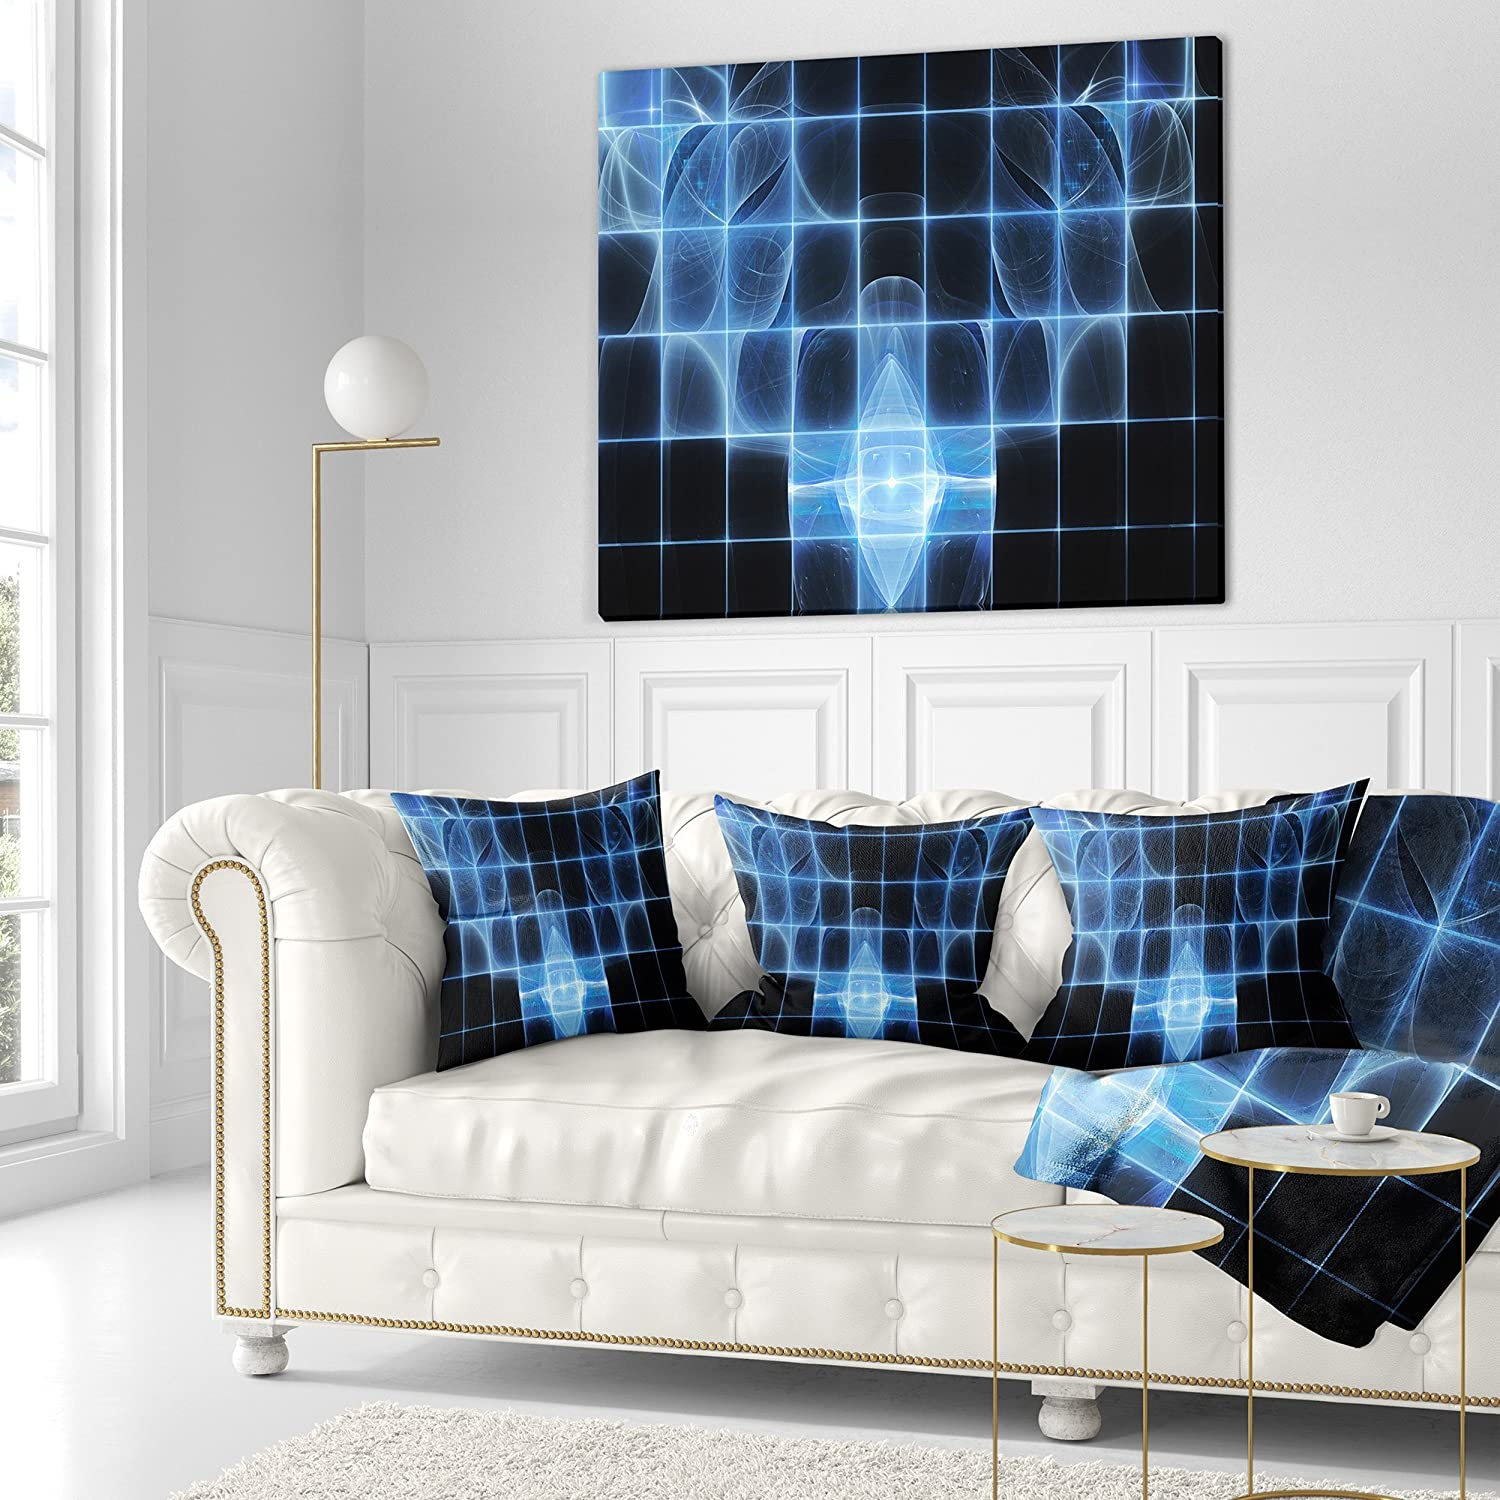 x 18 in in Designart CU16061-18-18 Bright Blue Bat on Radar Screen Abstract Cushion Cover for Living Room Sofa Throw Pillow 18 in Insert Printed on Both Side